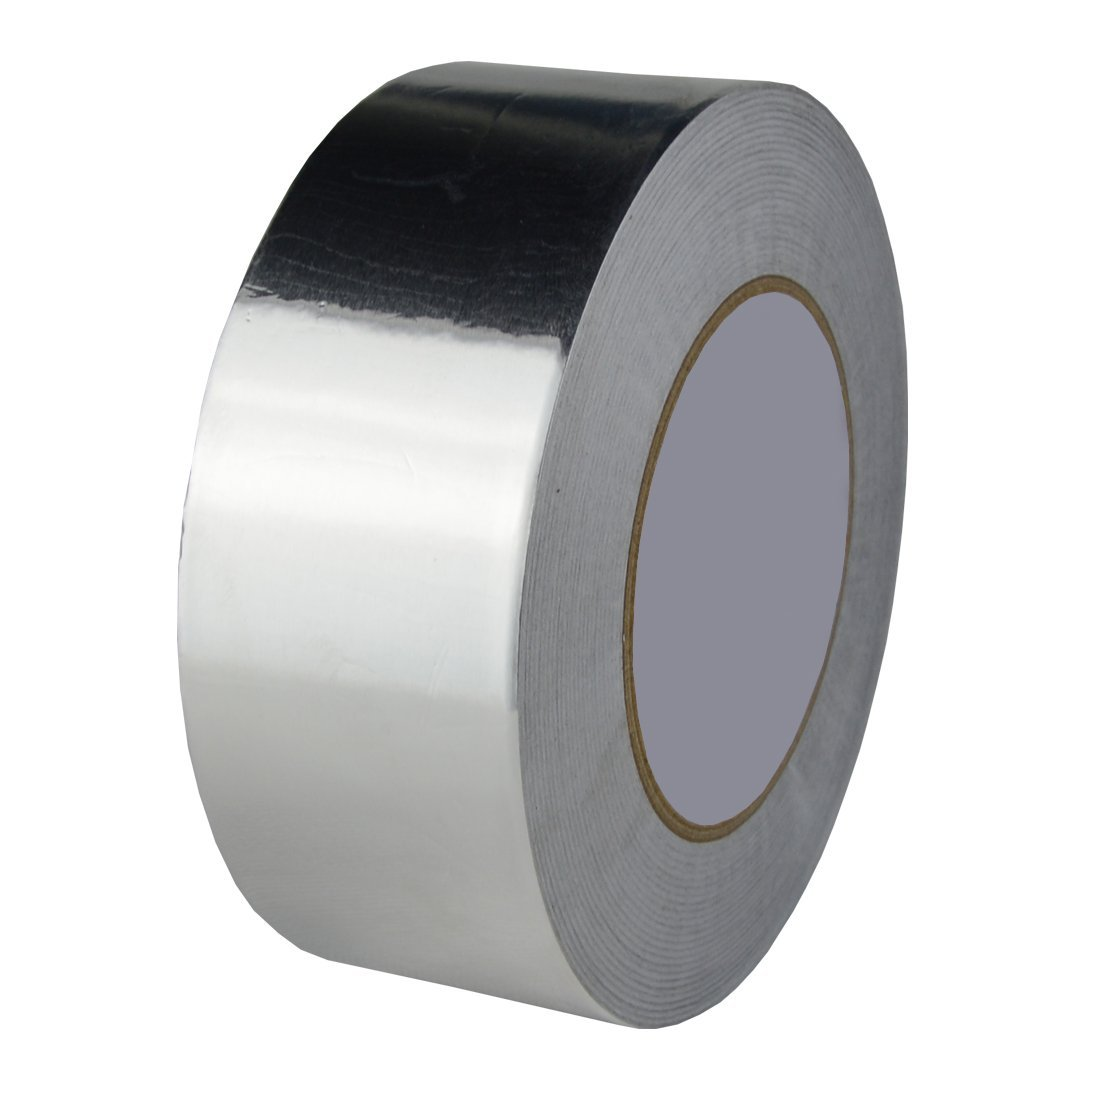 Hxtape 4 Mil (2 inch-55yds) Aluminum Foil Tape,Silver,Good for HVAC, Sealing & Patching Hot & Cold Air Ducts, Metal Repair